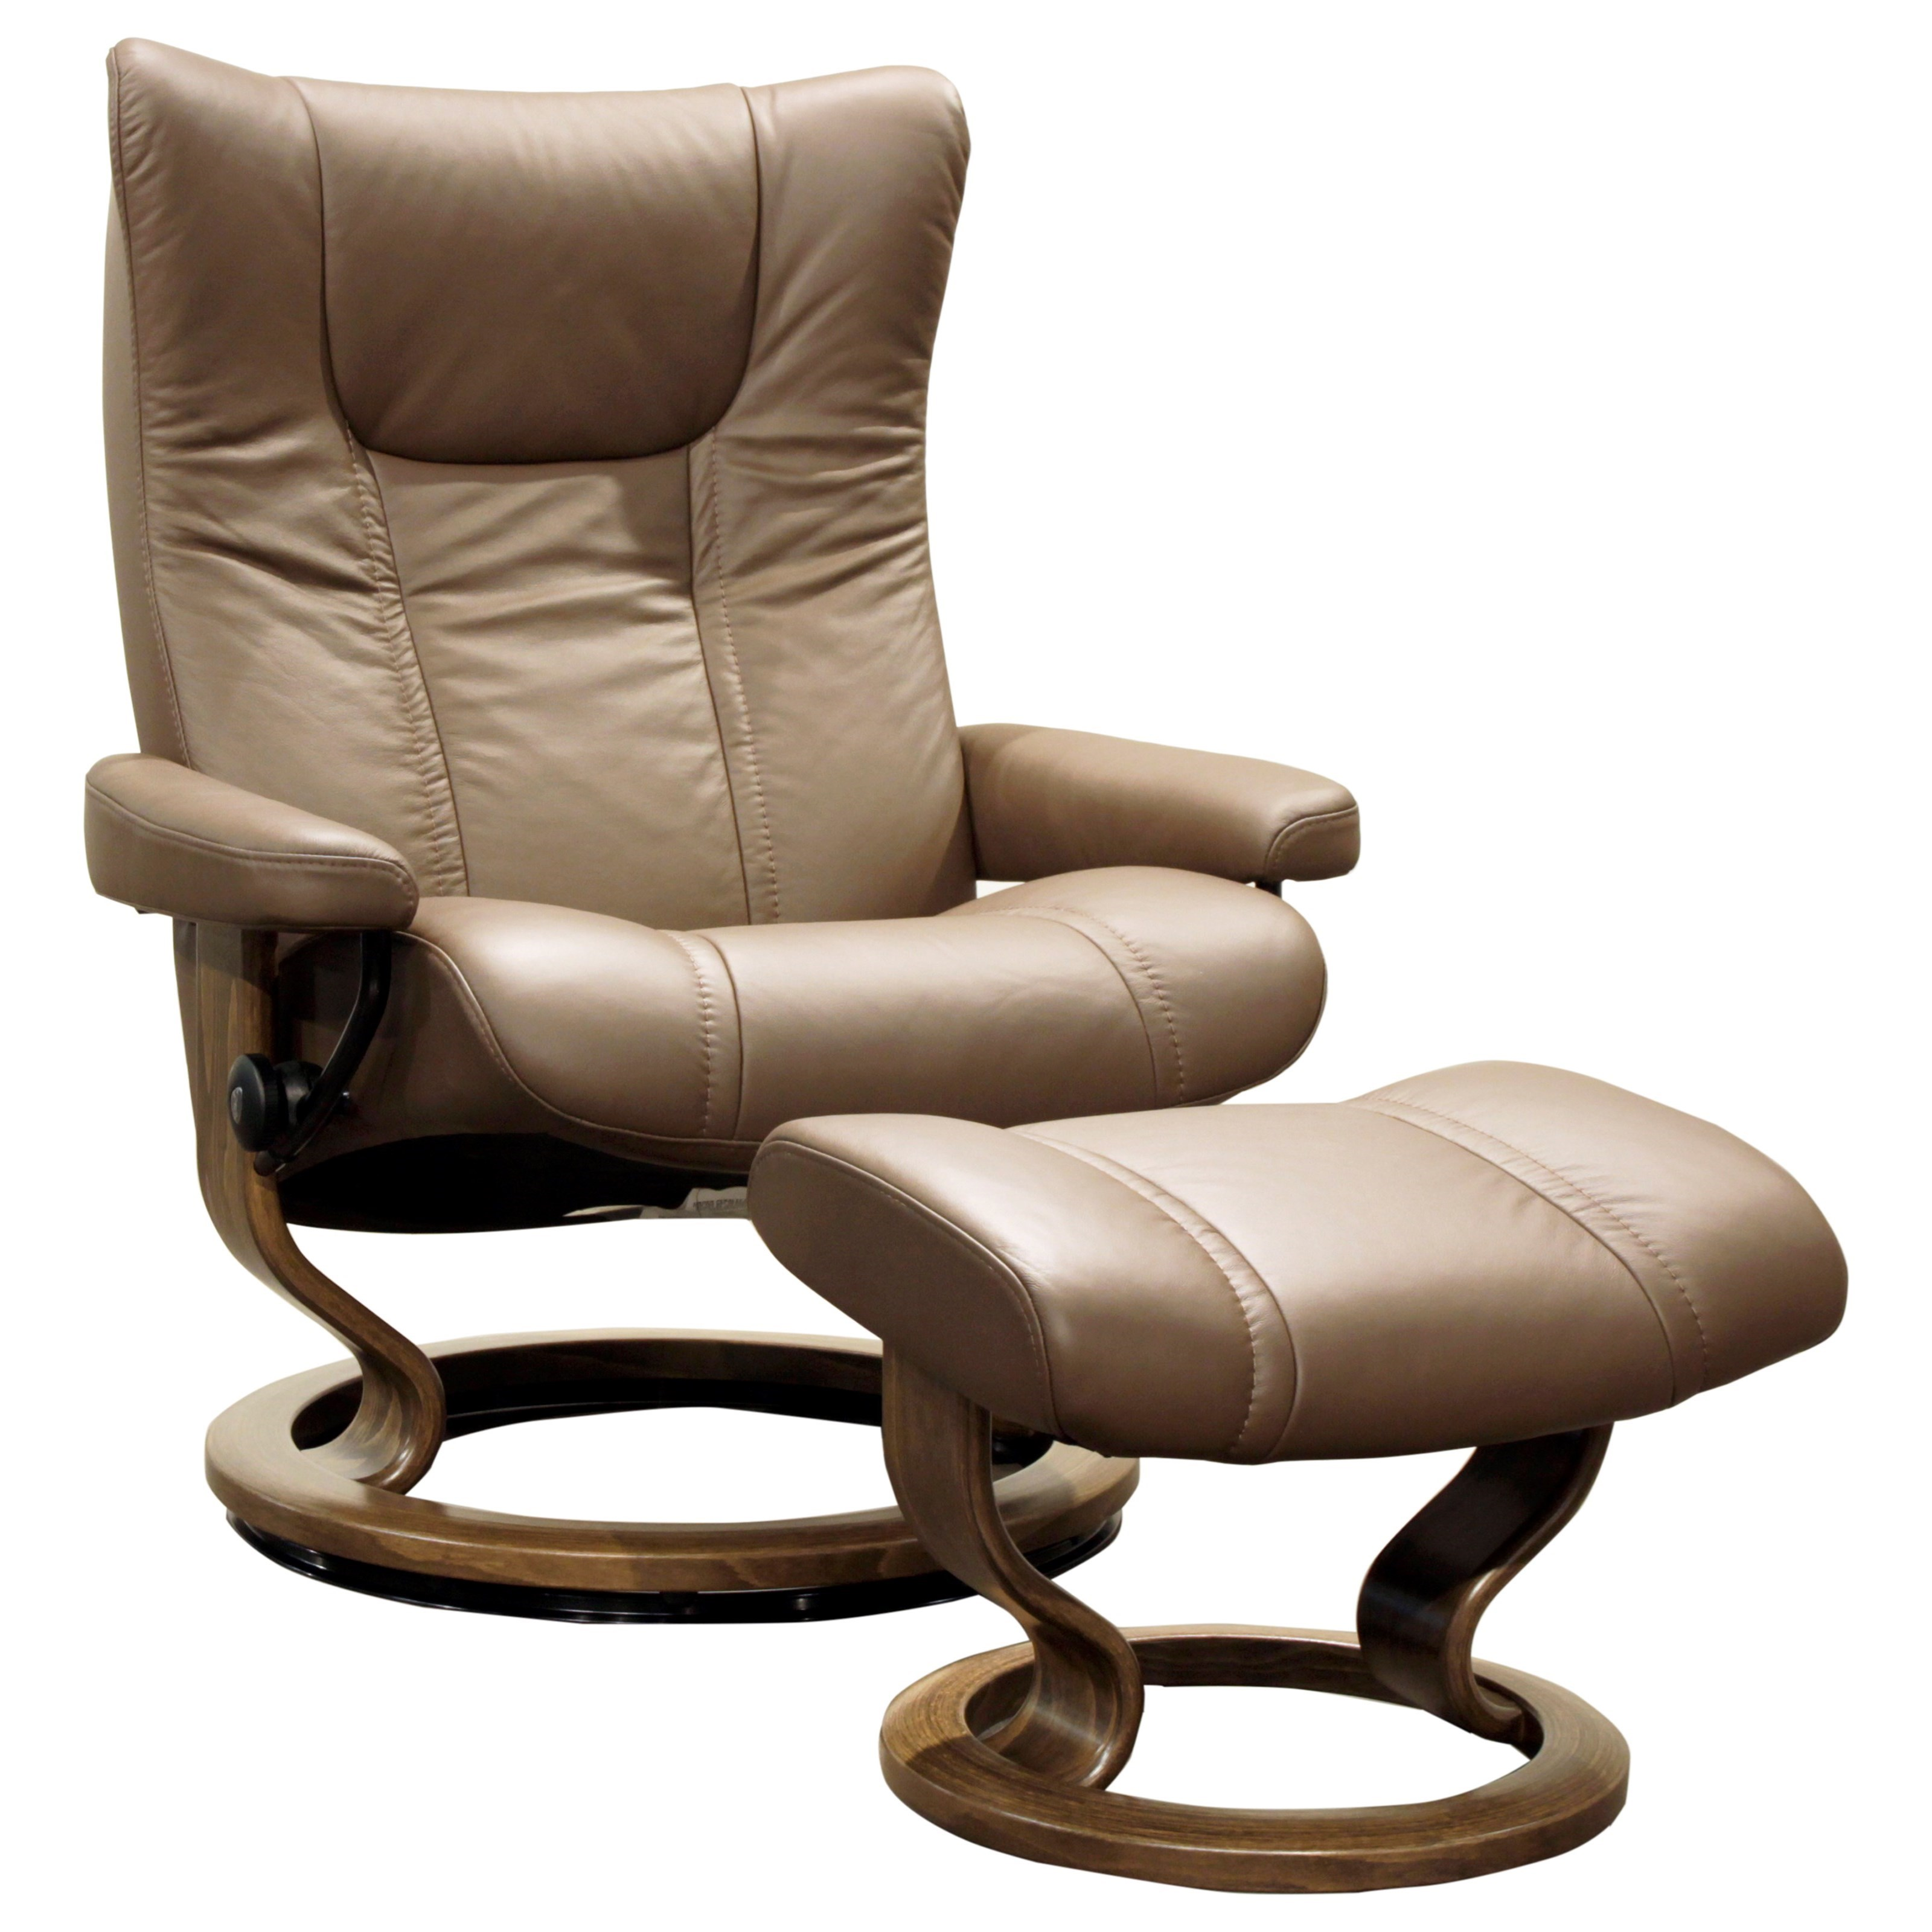 Large Stressless Chair & Ottoman